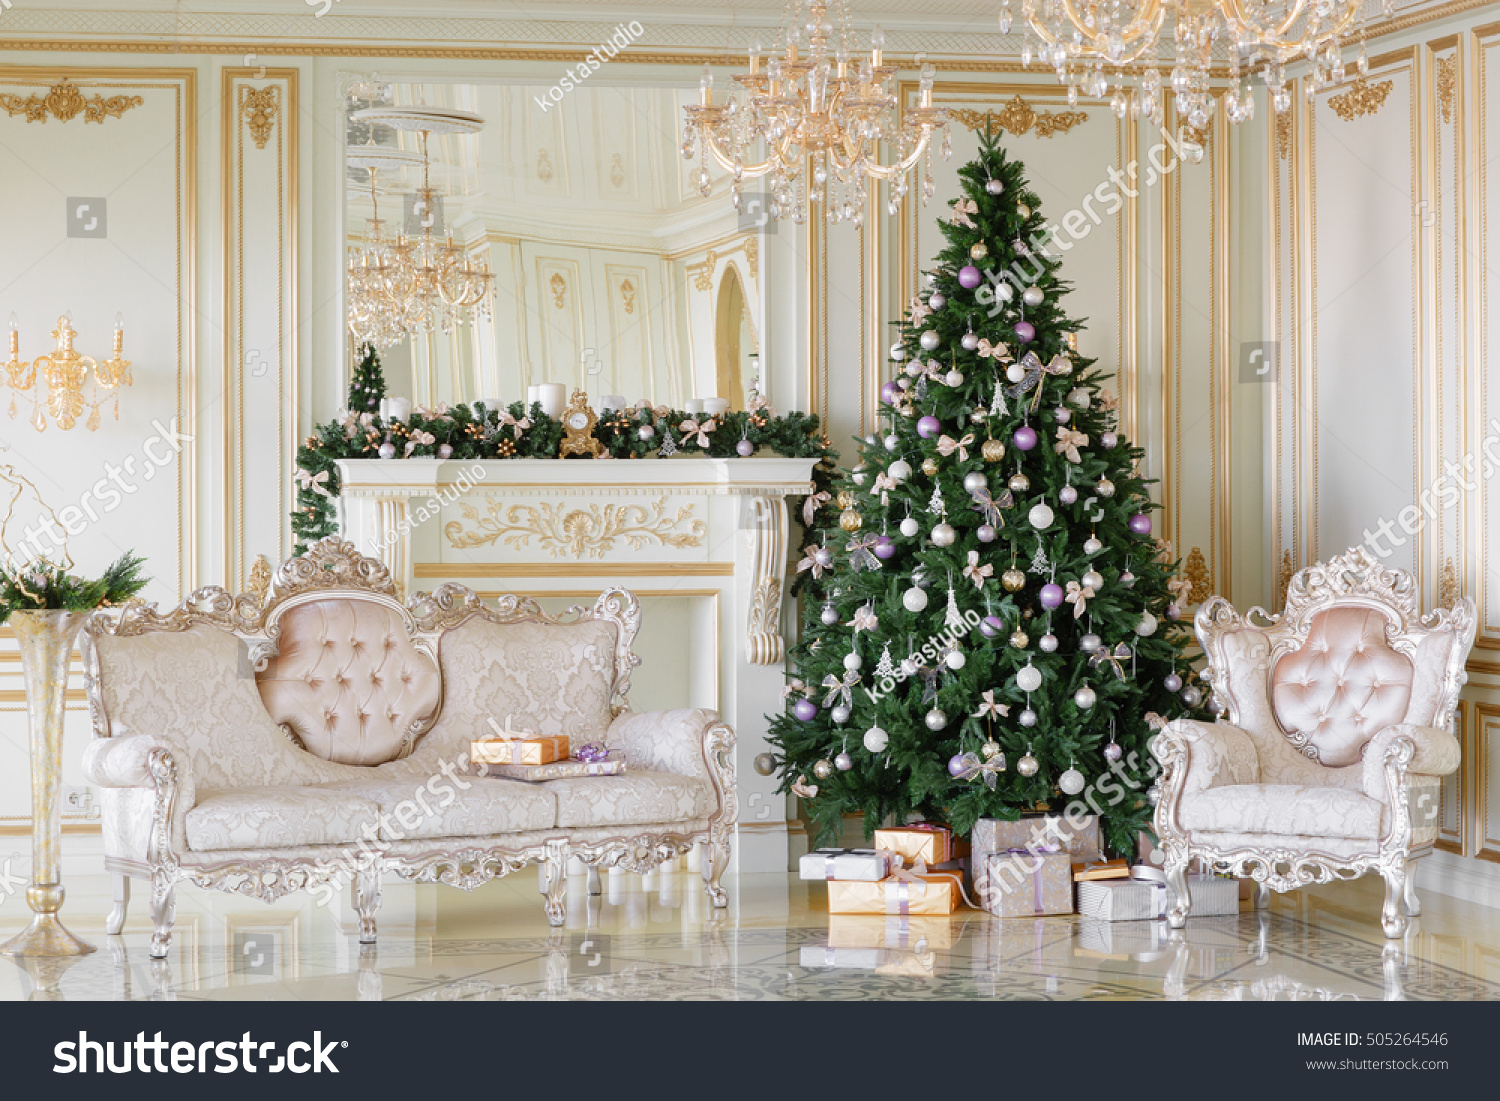 Christmas morning classic apartments with a white fireplace decorated tree bright sofa large windows